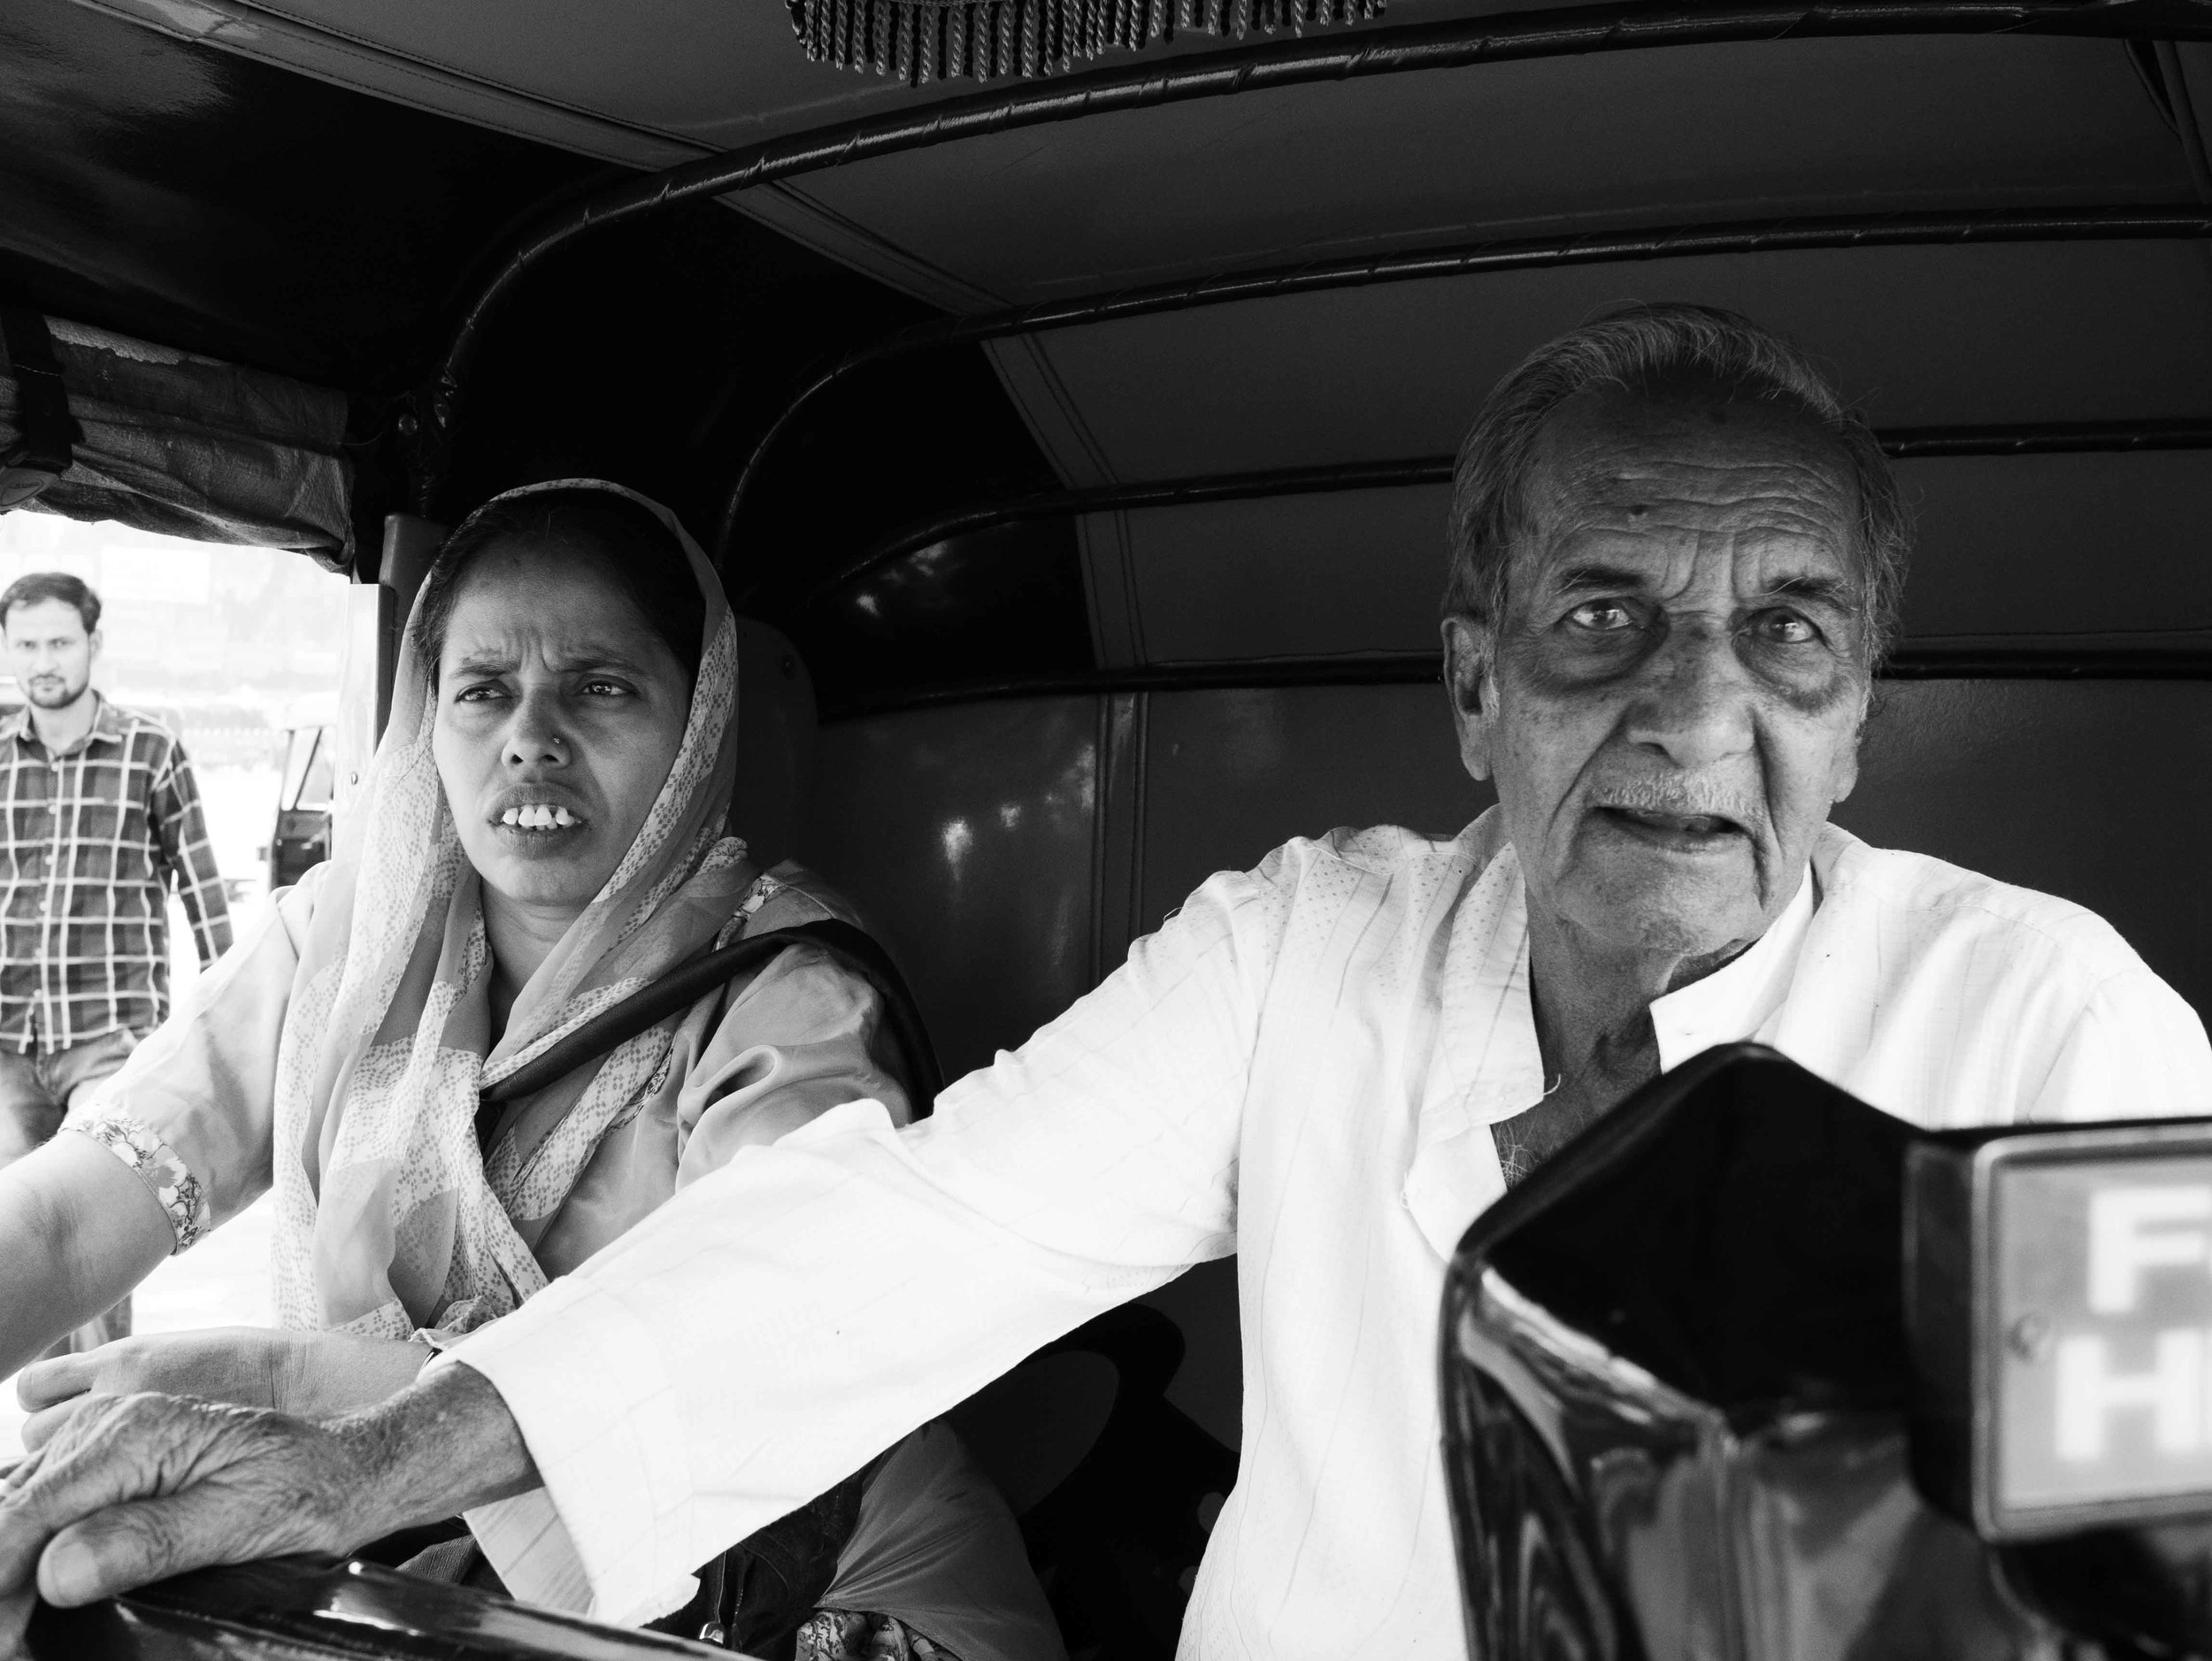 Two passengers photographed by Gagan Sadana as part of the Street Photography Series captured in Vadodara, Gujarat in India